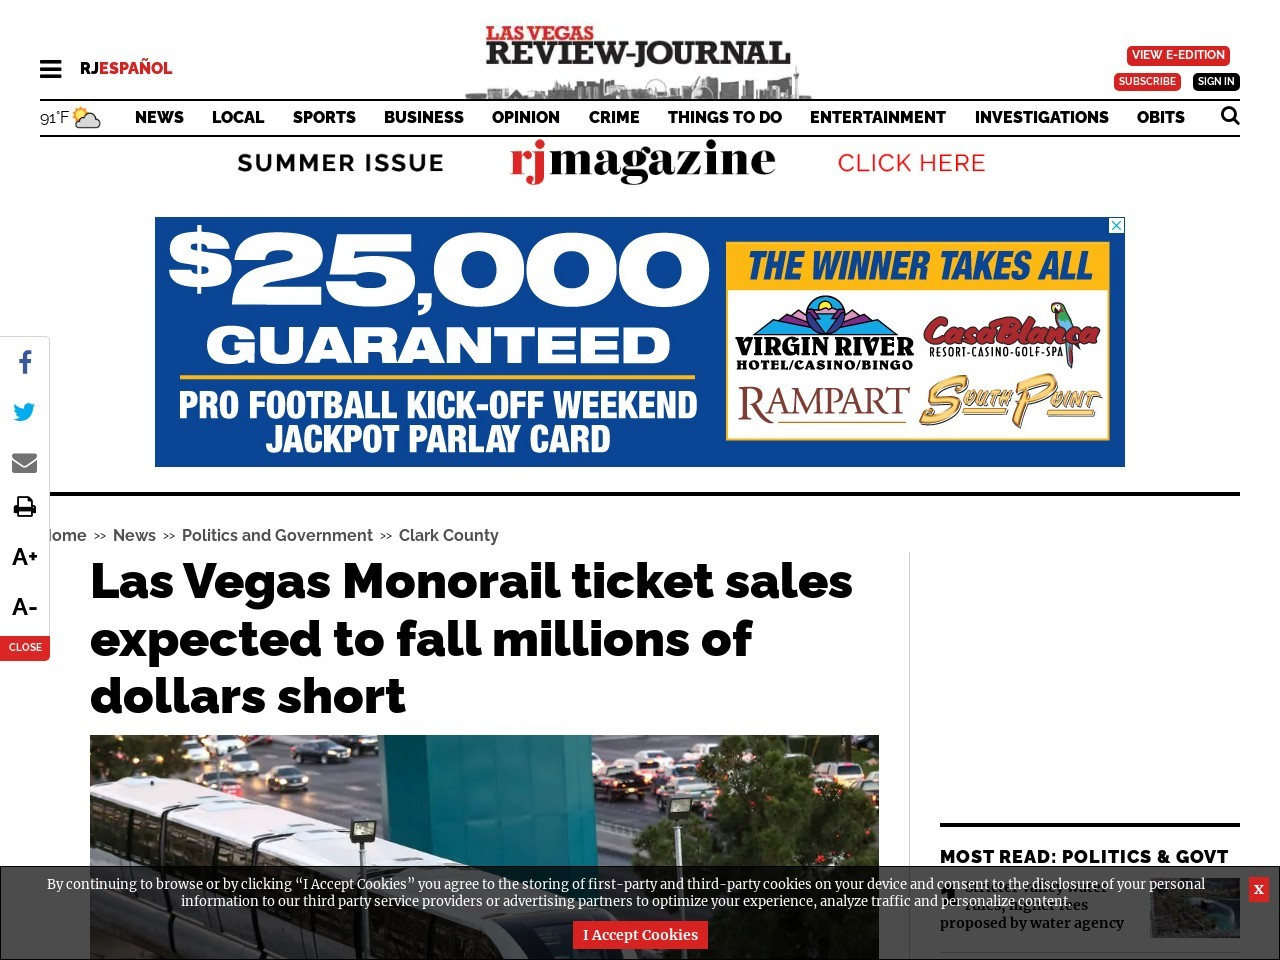 Las Vegas Monorail ticket sales expected to fall millions of dollars short